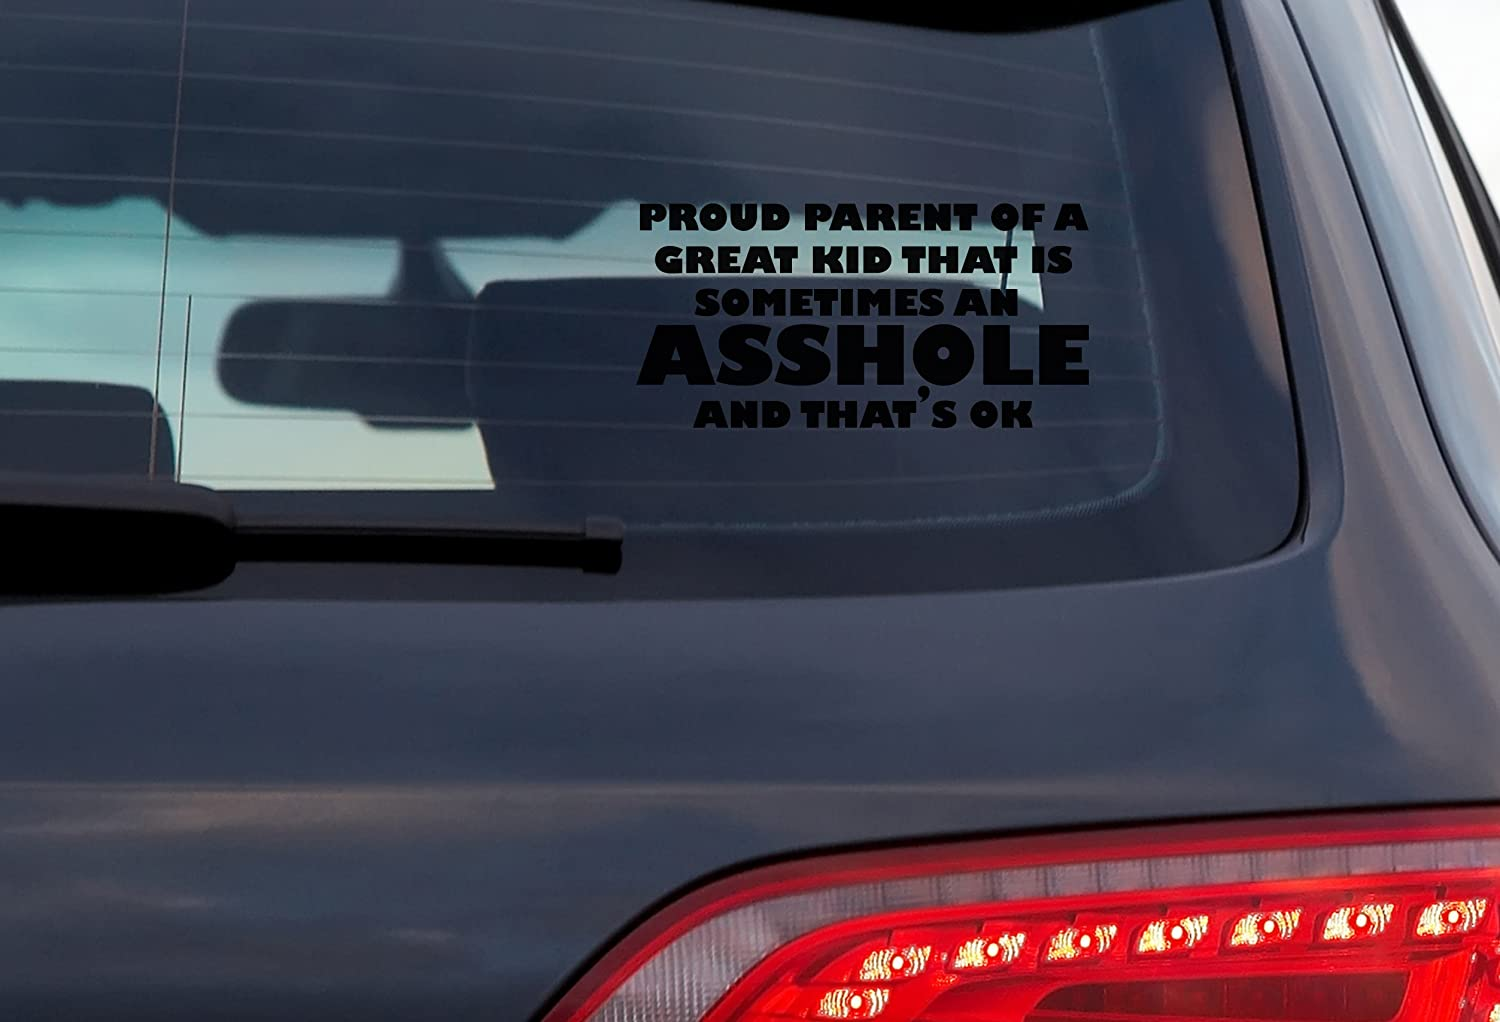 DOOMSDAYDECALS Proud Parent Of A Great Kid 8 Inch Vinyl Decal For Car Window Exterior White